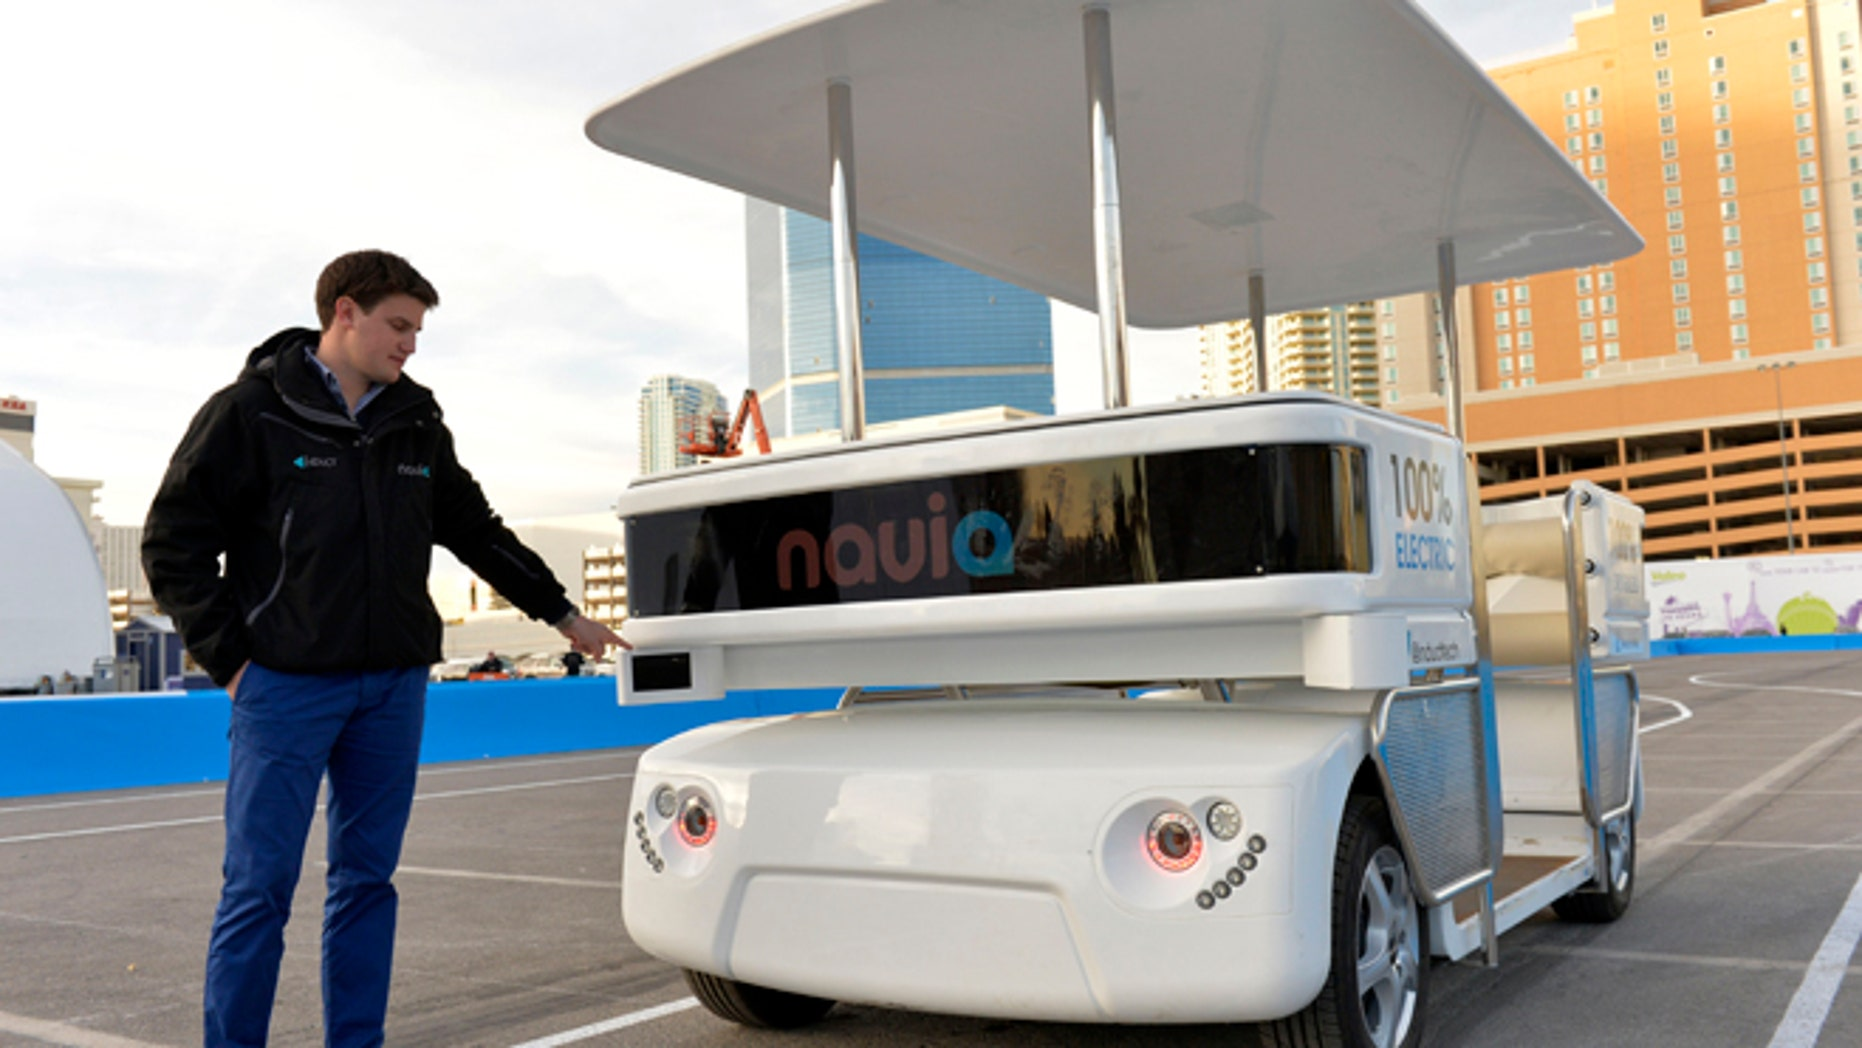 Raphael Gindrat, from Induct, points to a guidance laser while demonstrating their new Navia driverless shuttle at the International Consumer Electronics Show, Monday, Jan. 6, 2014, in Las Vegas. (AP Photo/Jack Dempsey)